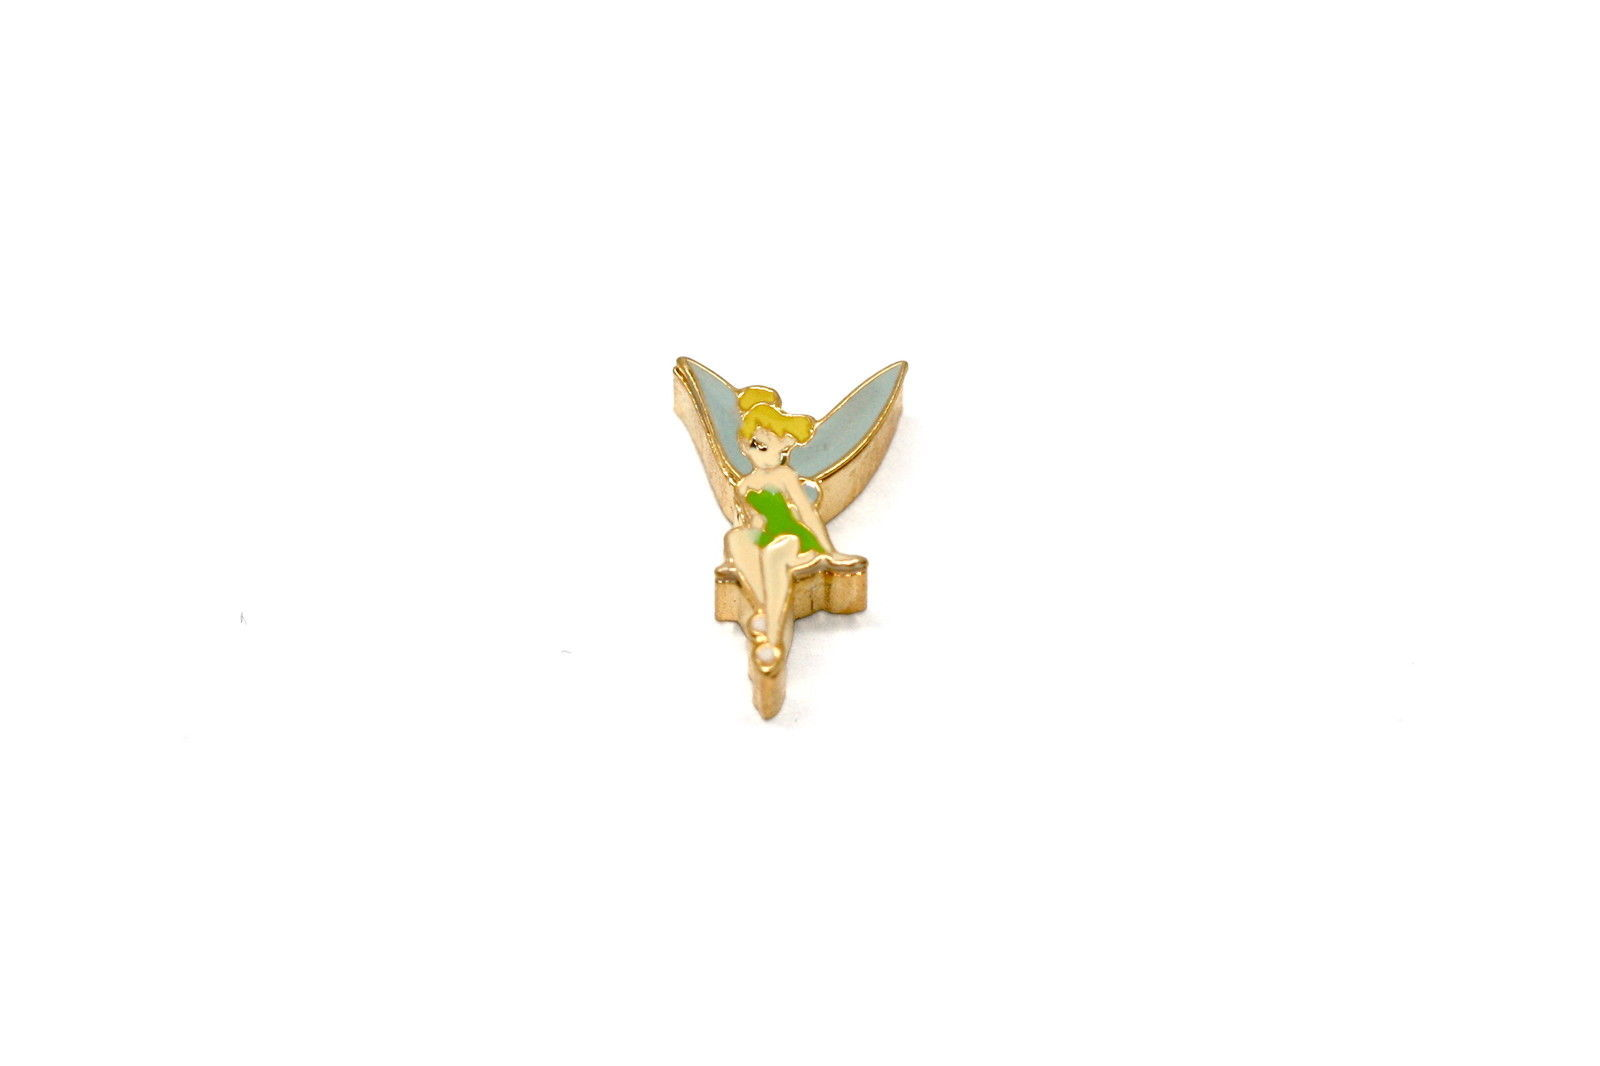 BRACCIALE DISNEY TINKERBELL HAND STAINLESS STEEL GOLD PLATED FLOATING CHARM